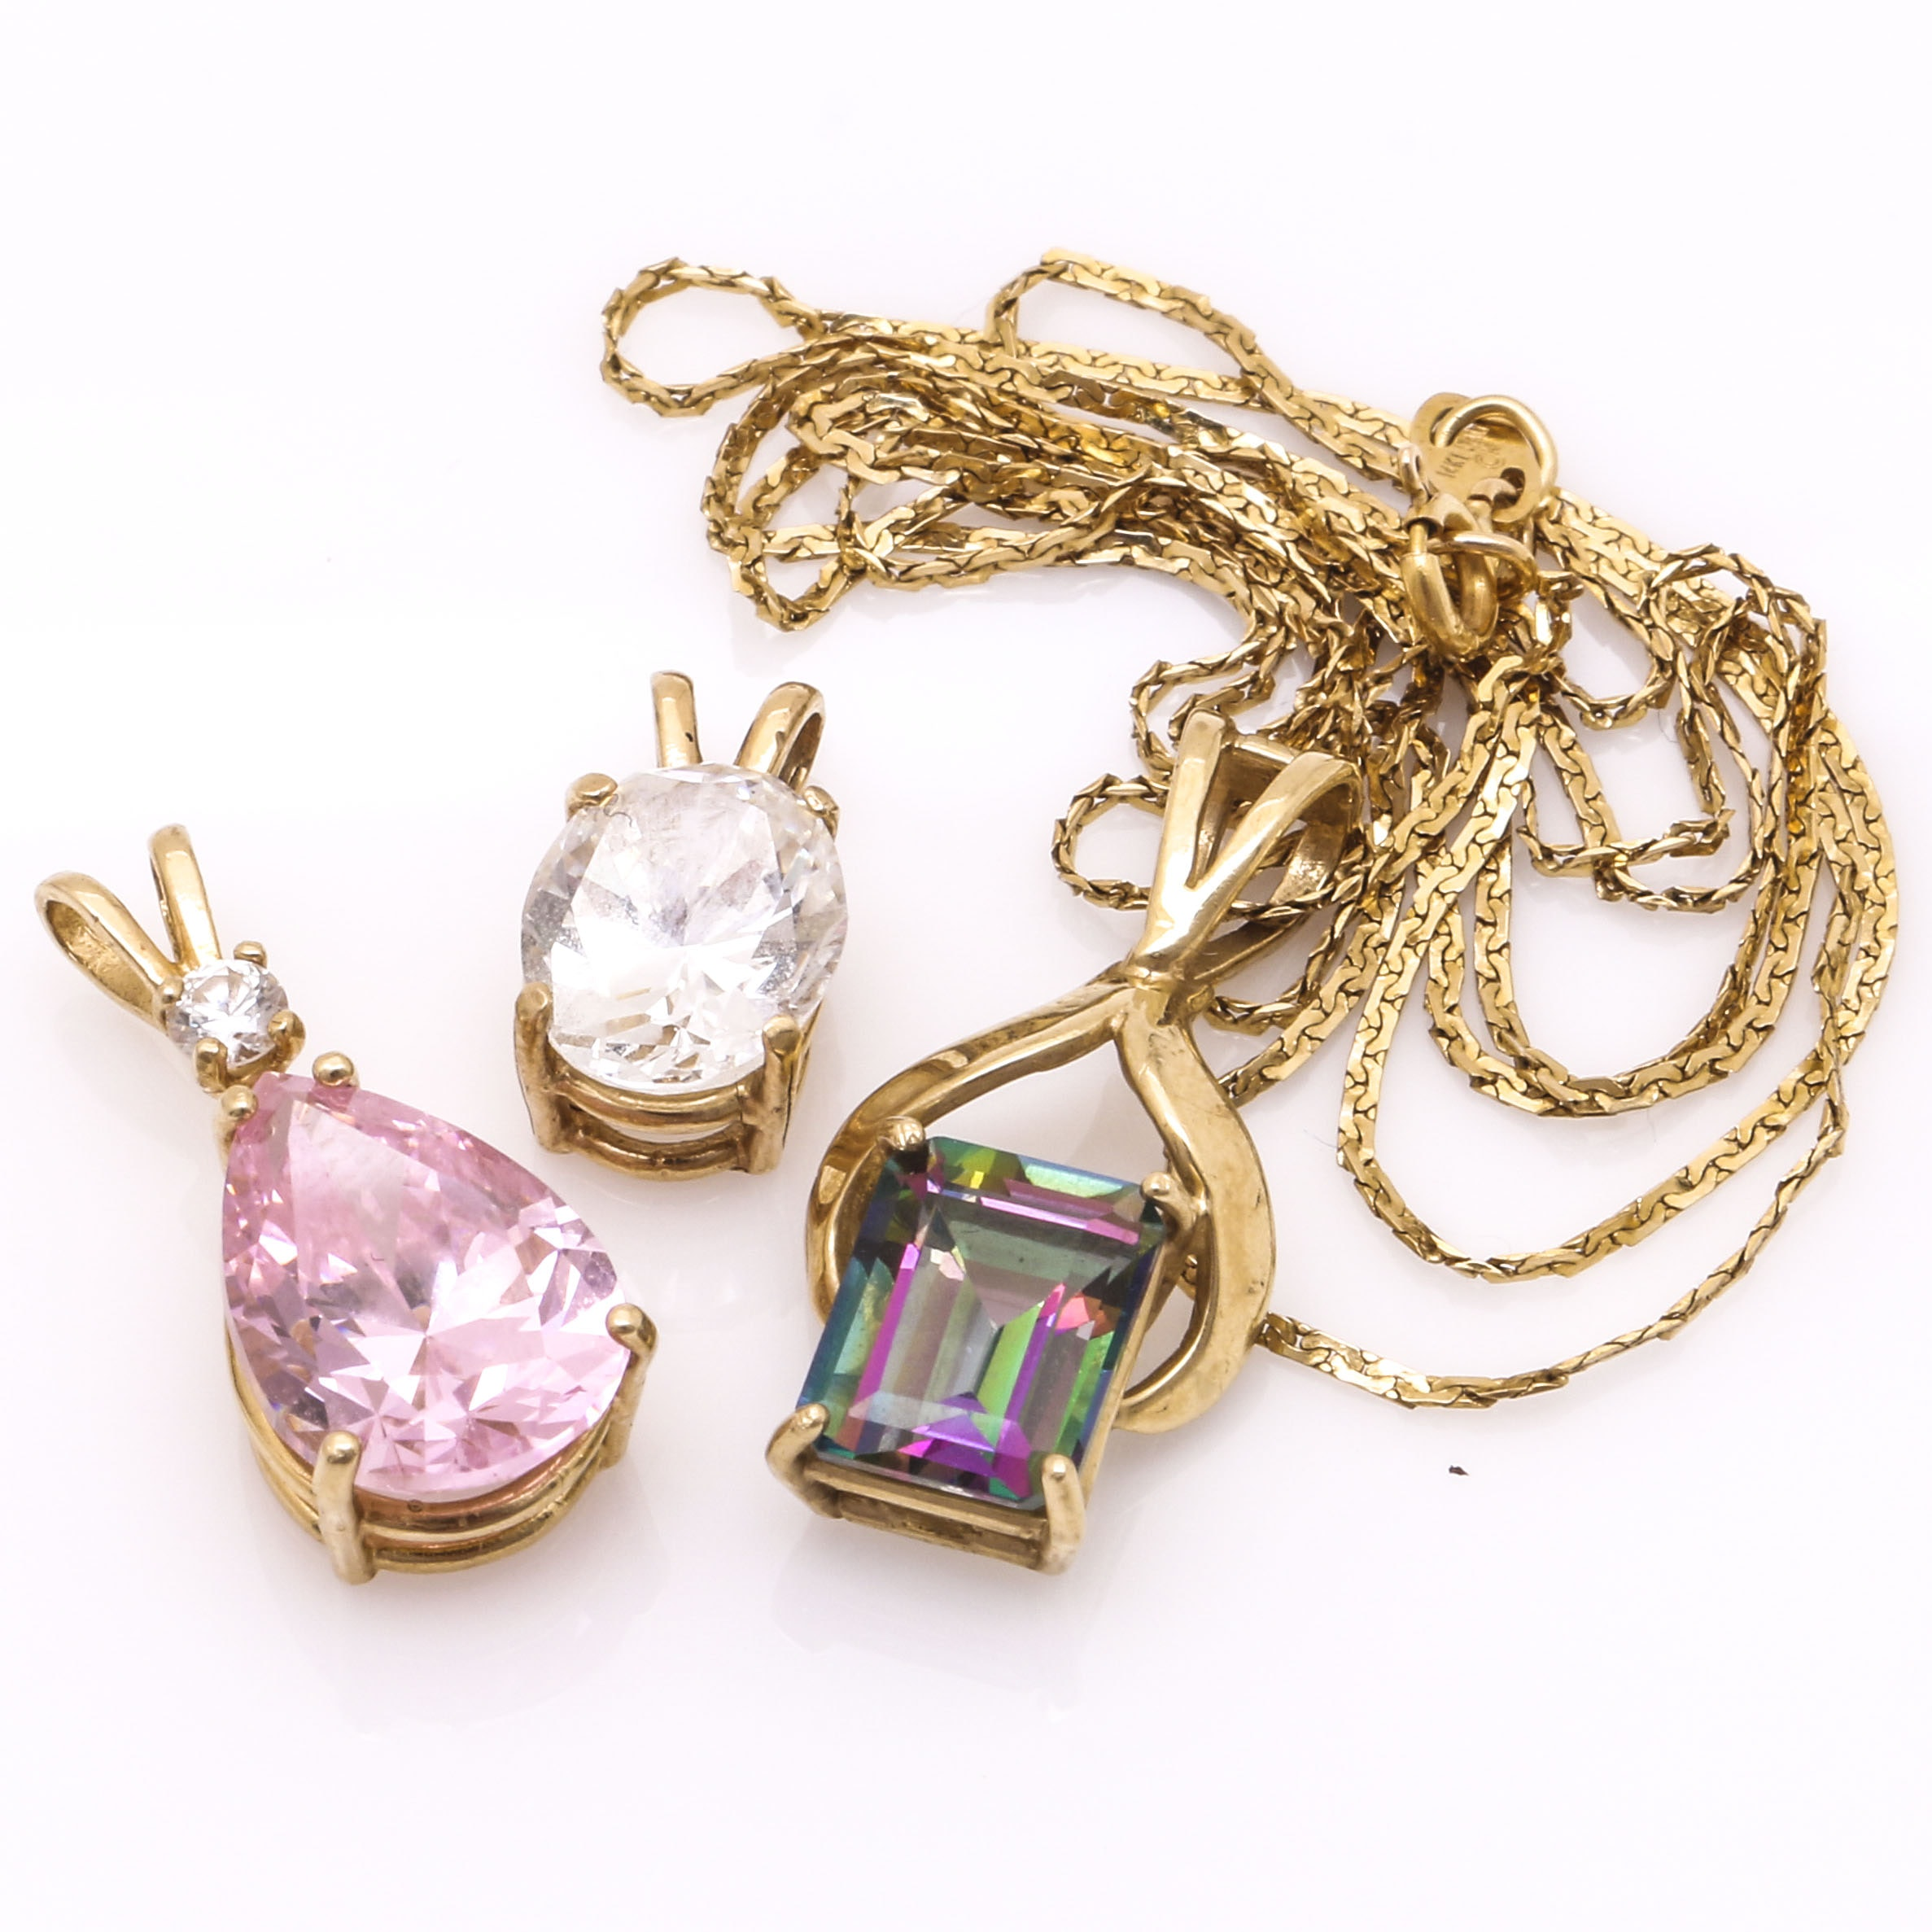 14K Yellow Gold Mystic Topaz Necklace and Two 14K Yellow Gold Pendants